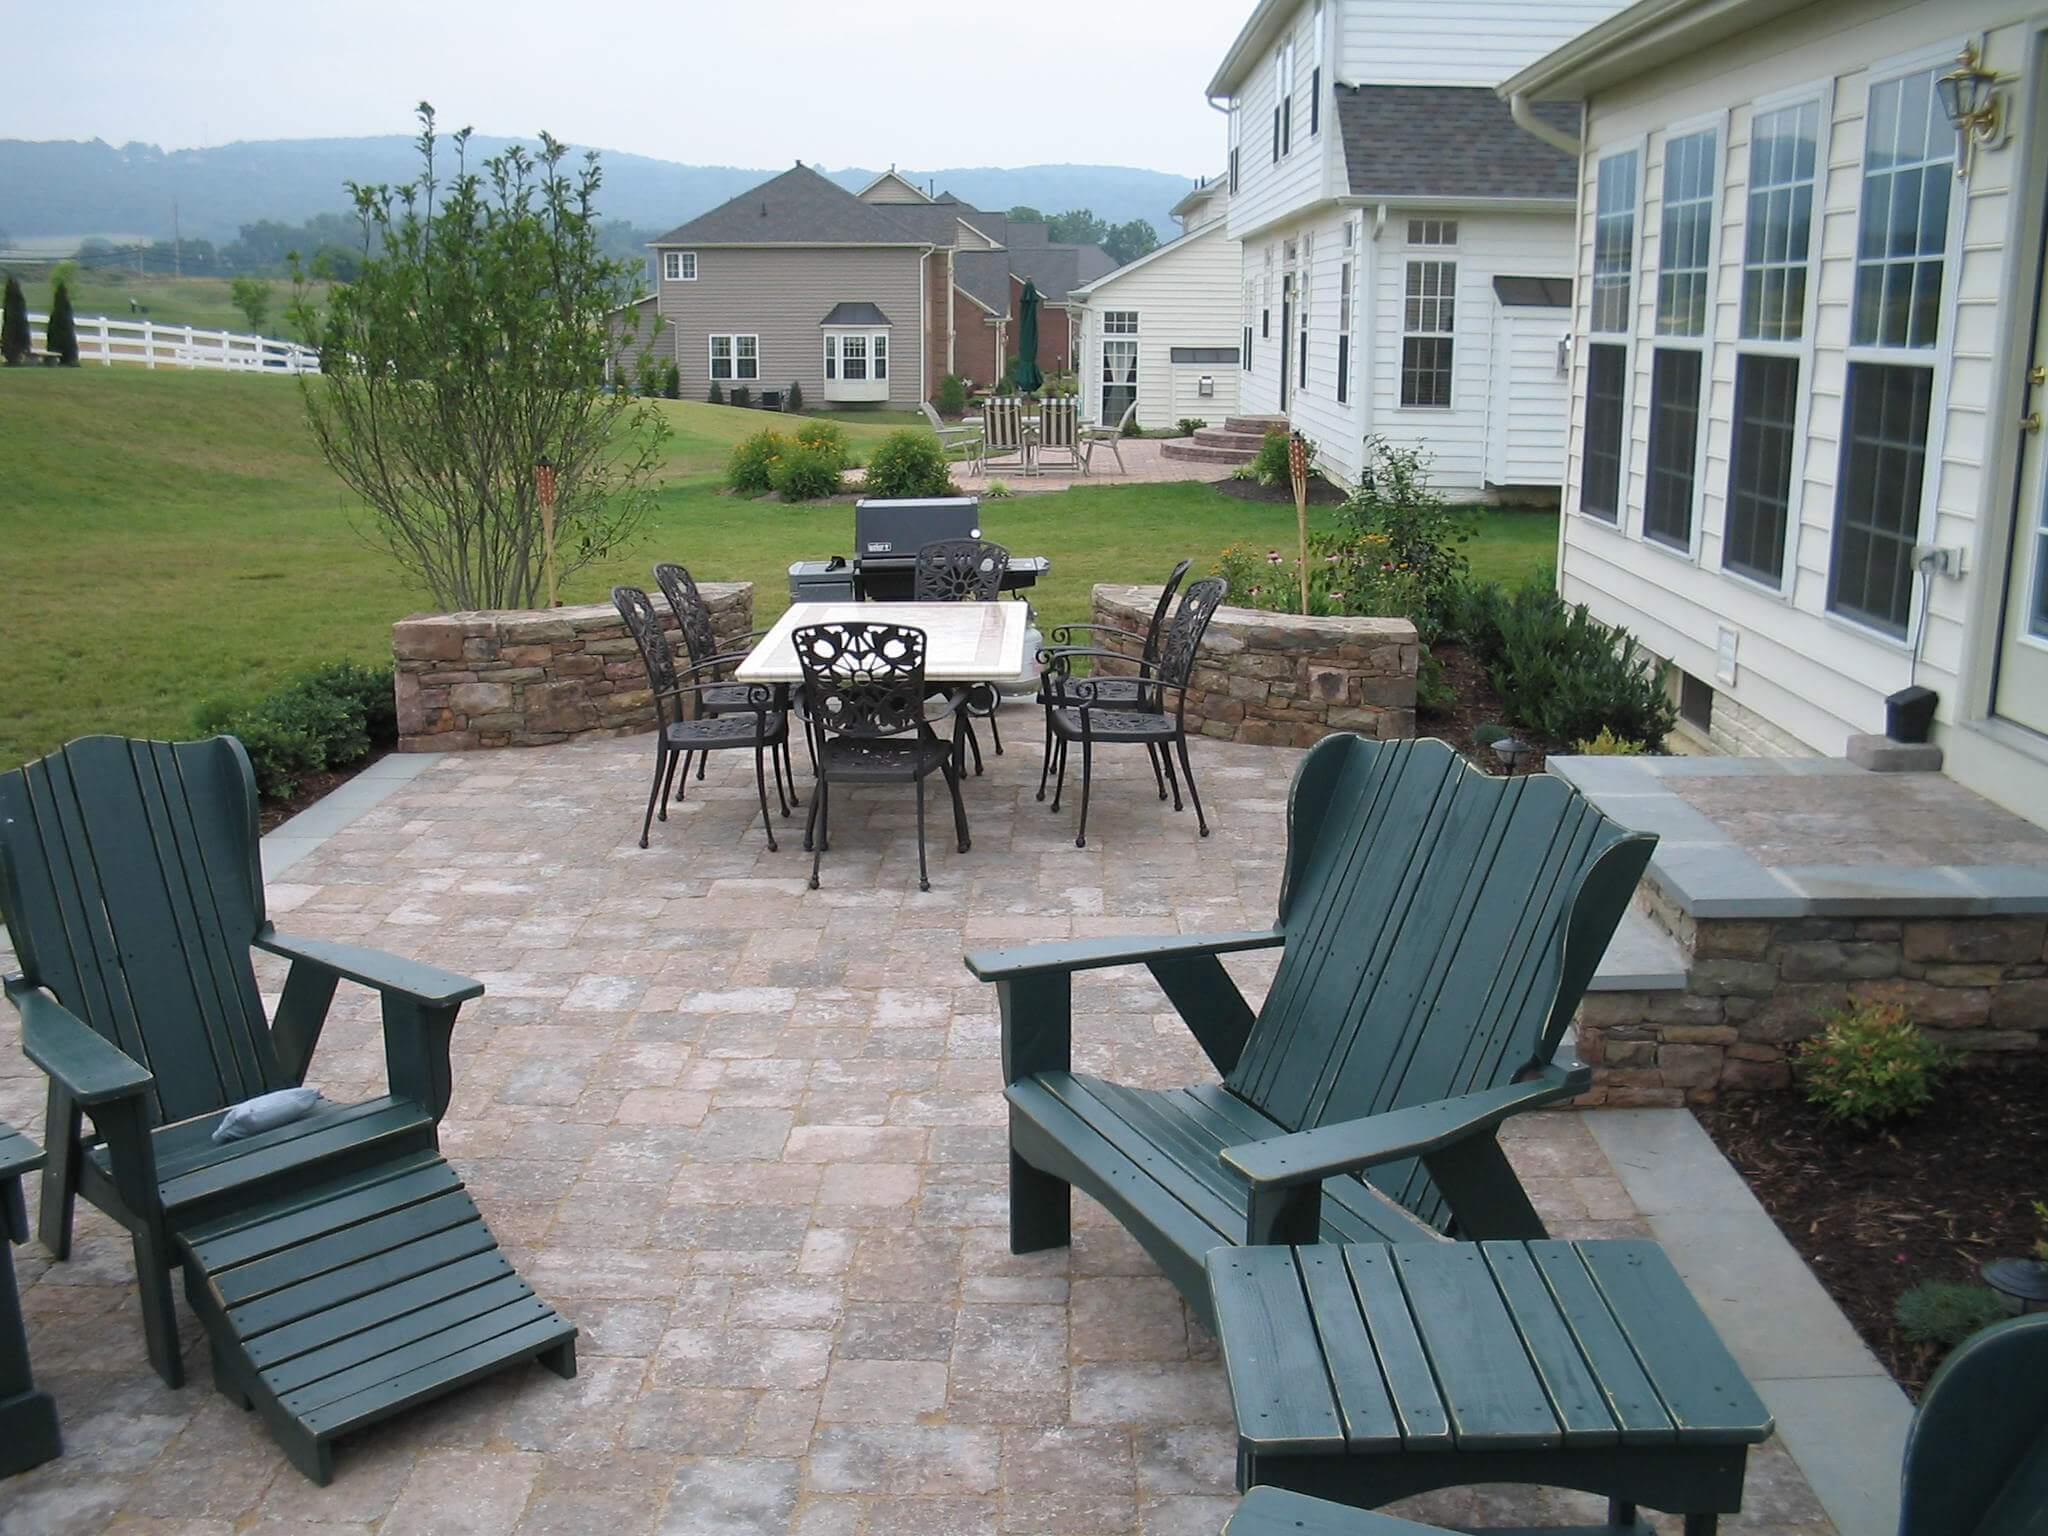 2 Paver Patio with Stone Landing and Double-Sided Stone Accent Walls